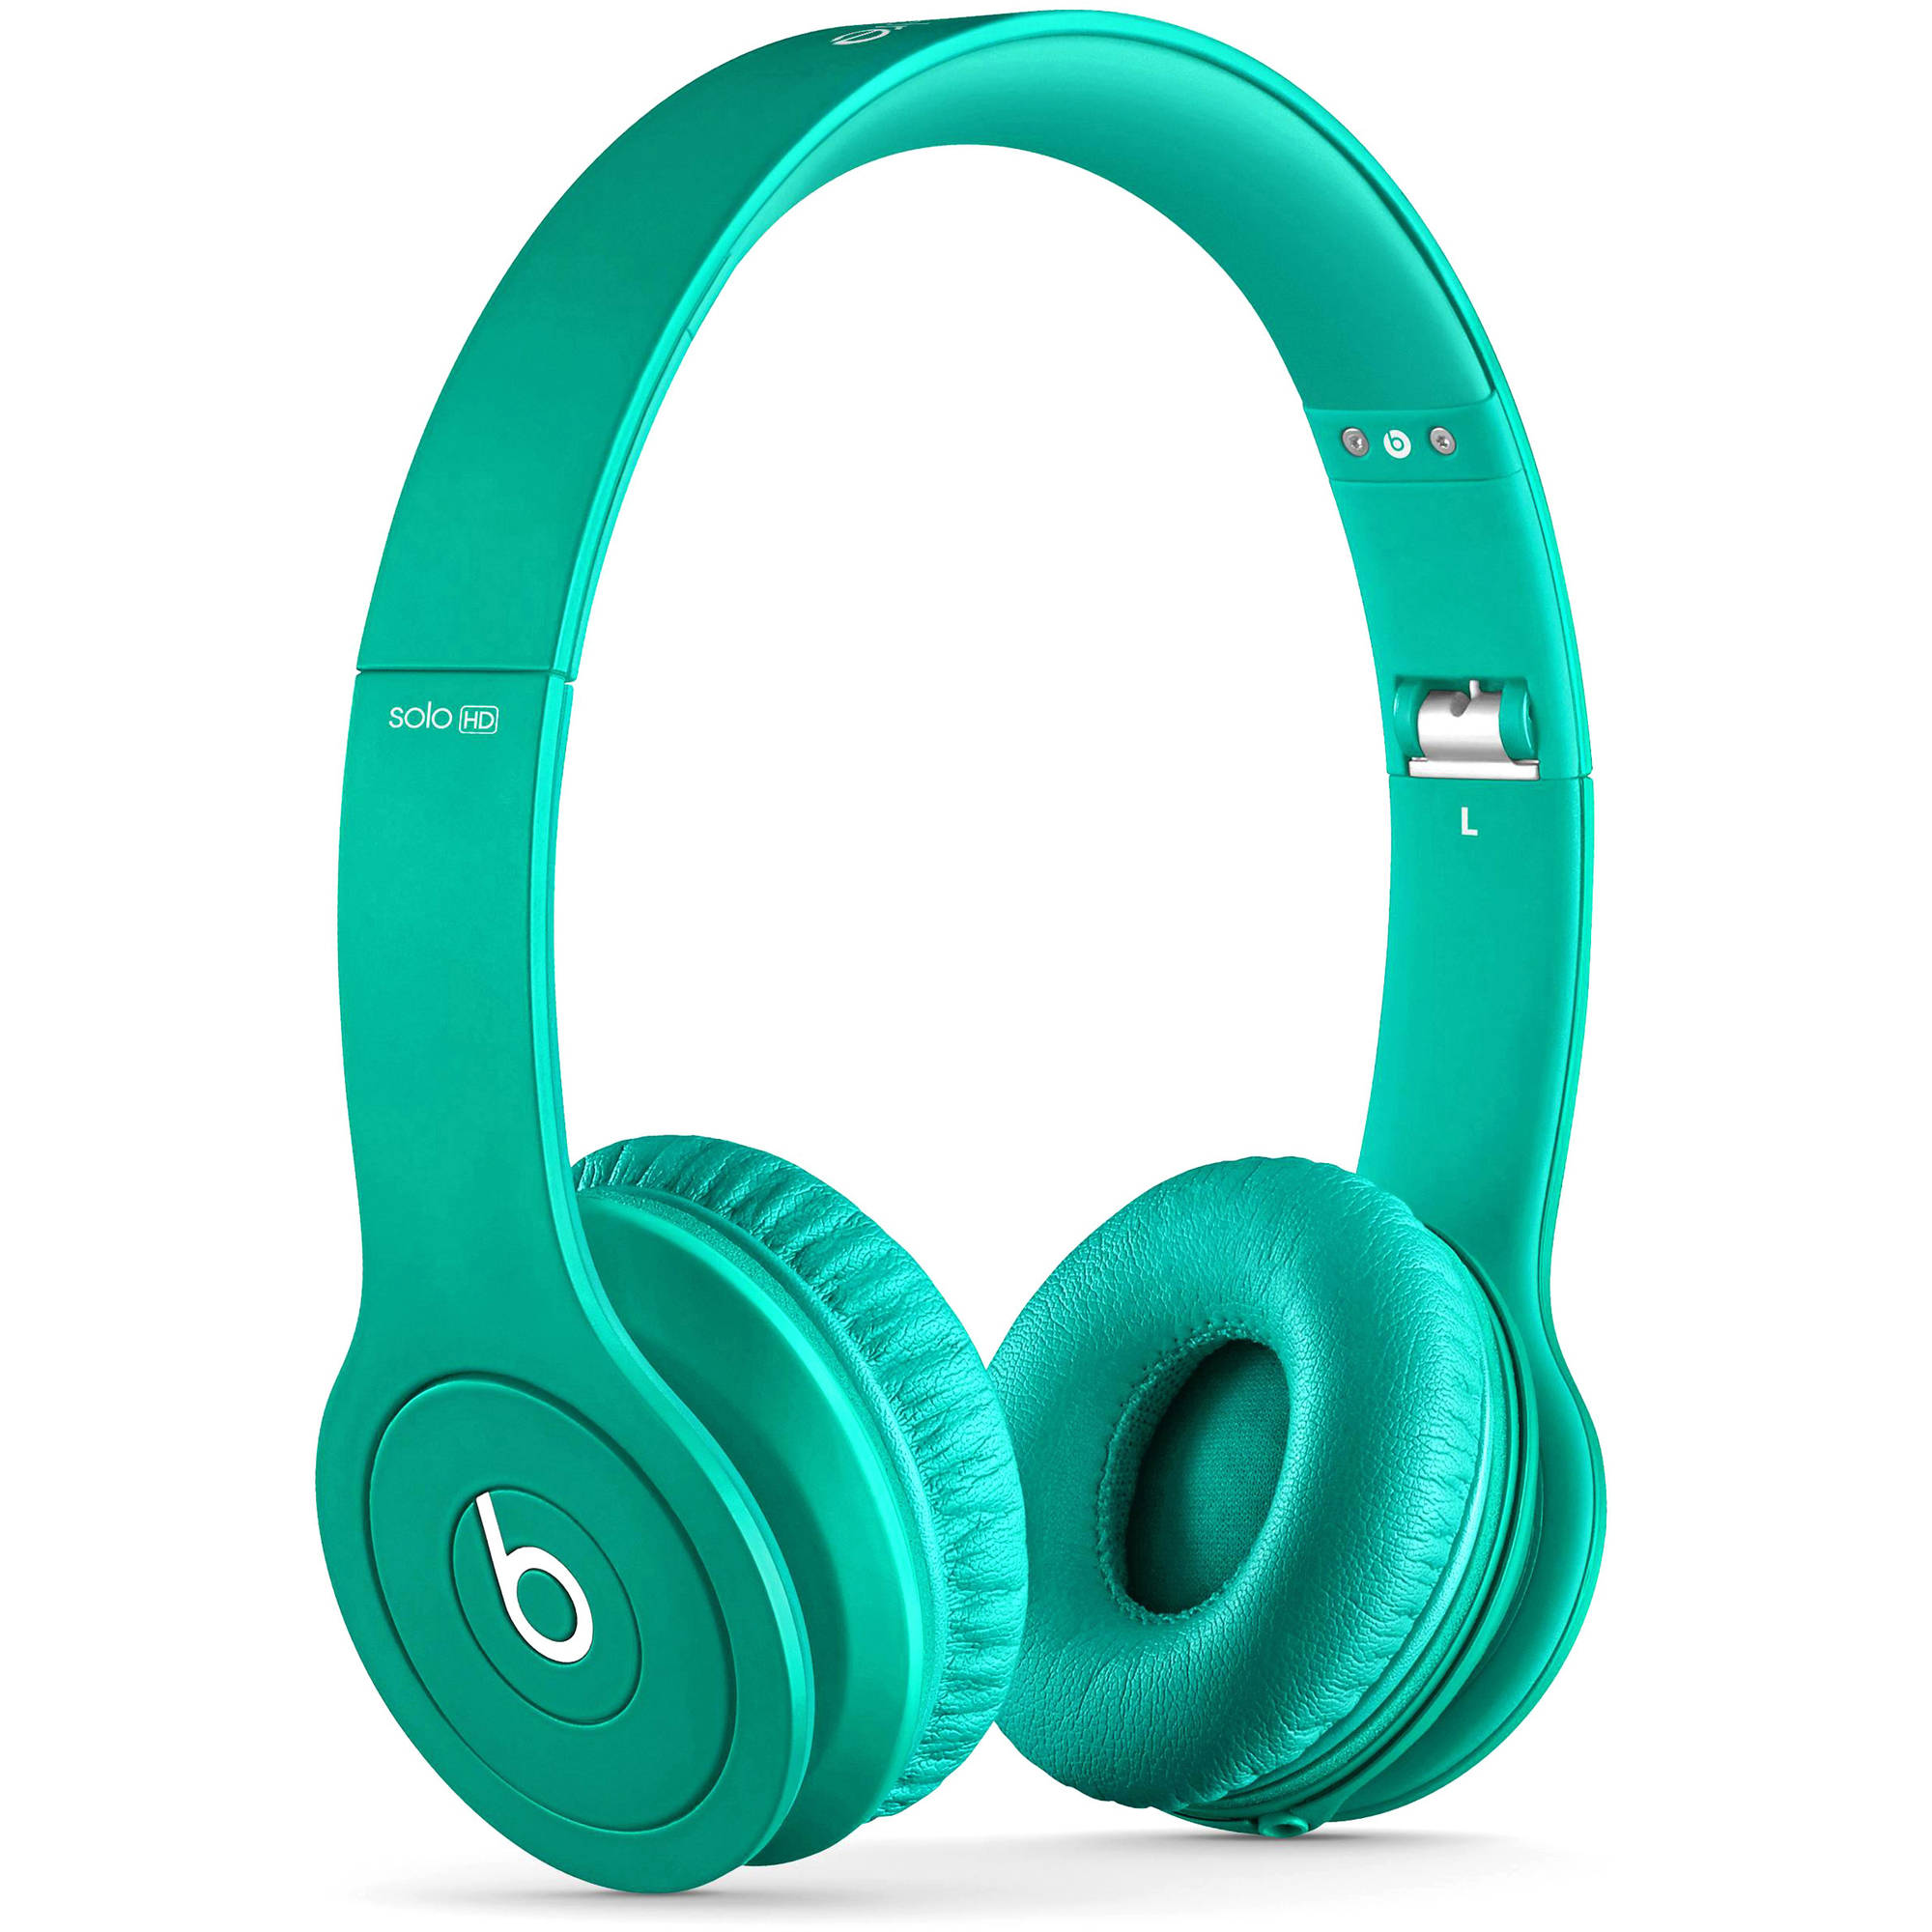 Refurbished Beats by Dr. Dre Drenched Solo Over-Ear Headphones